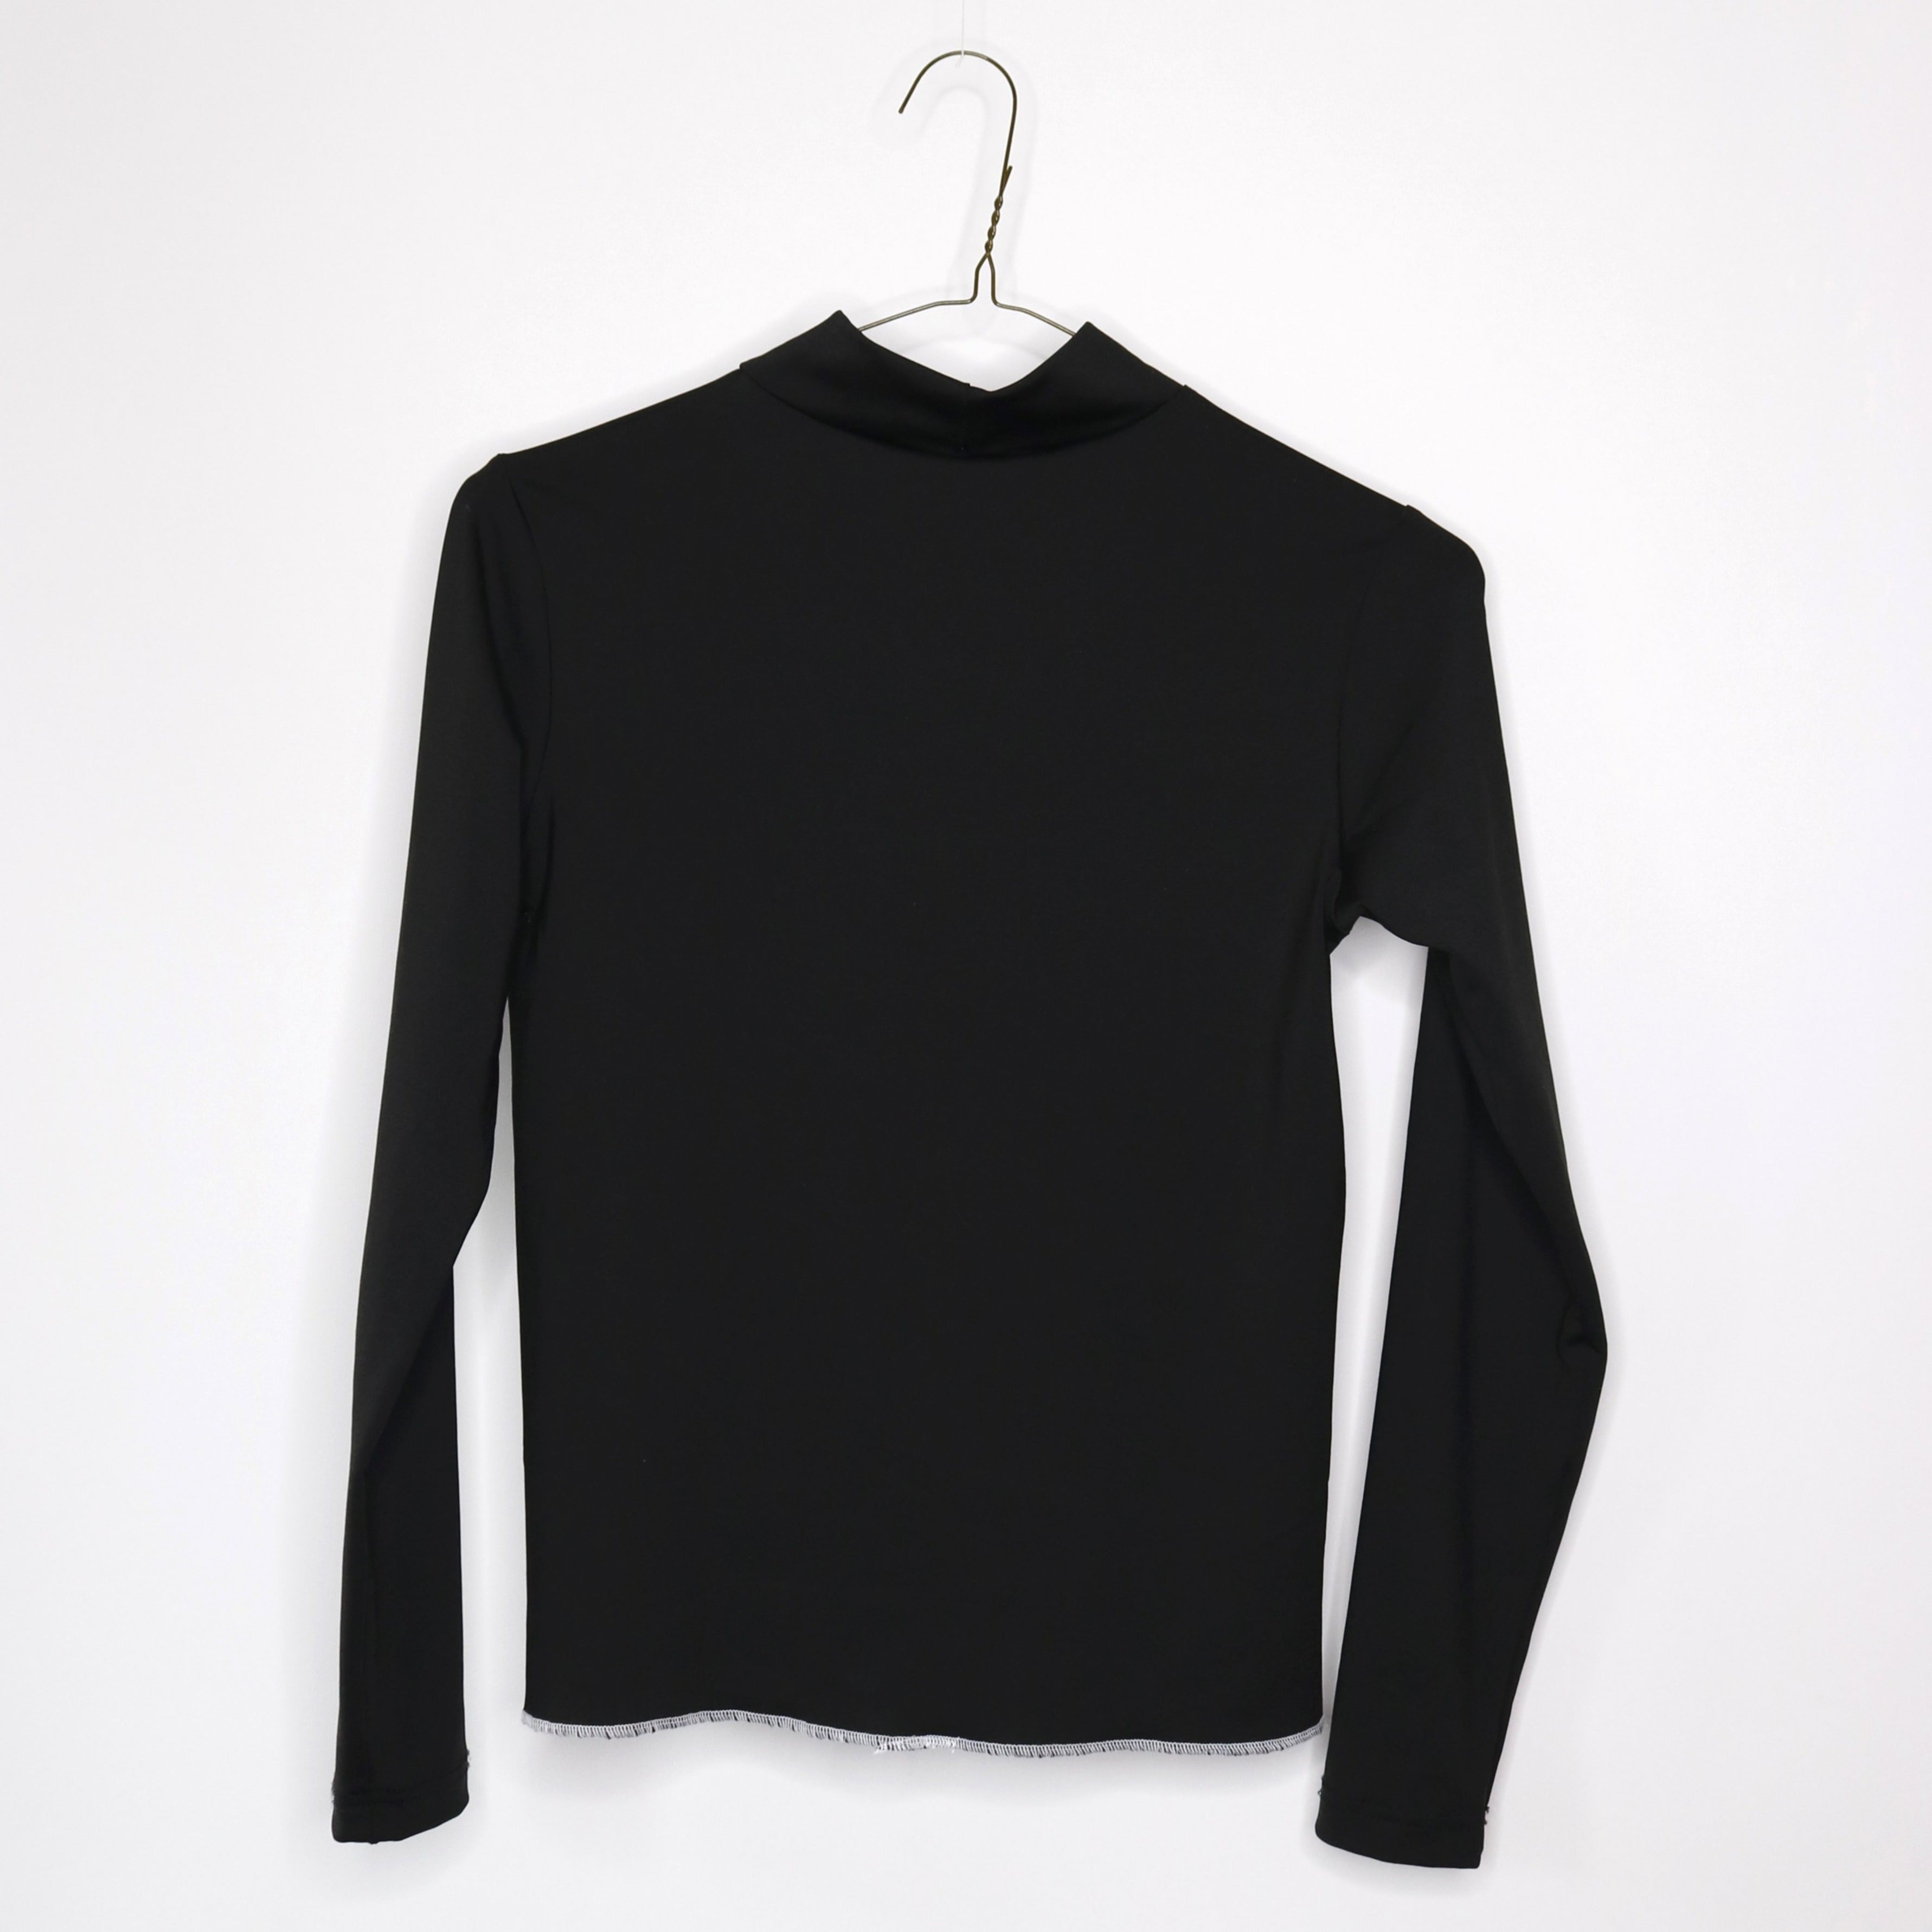 HECHA / 做 x OR?! Turtleneck